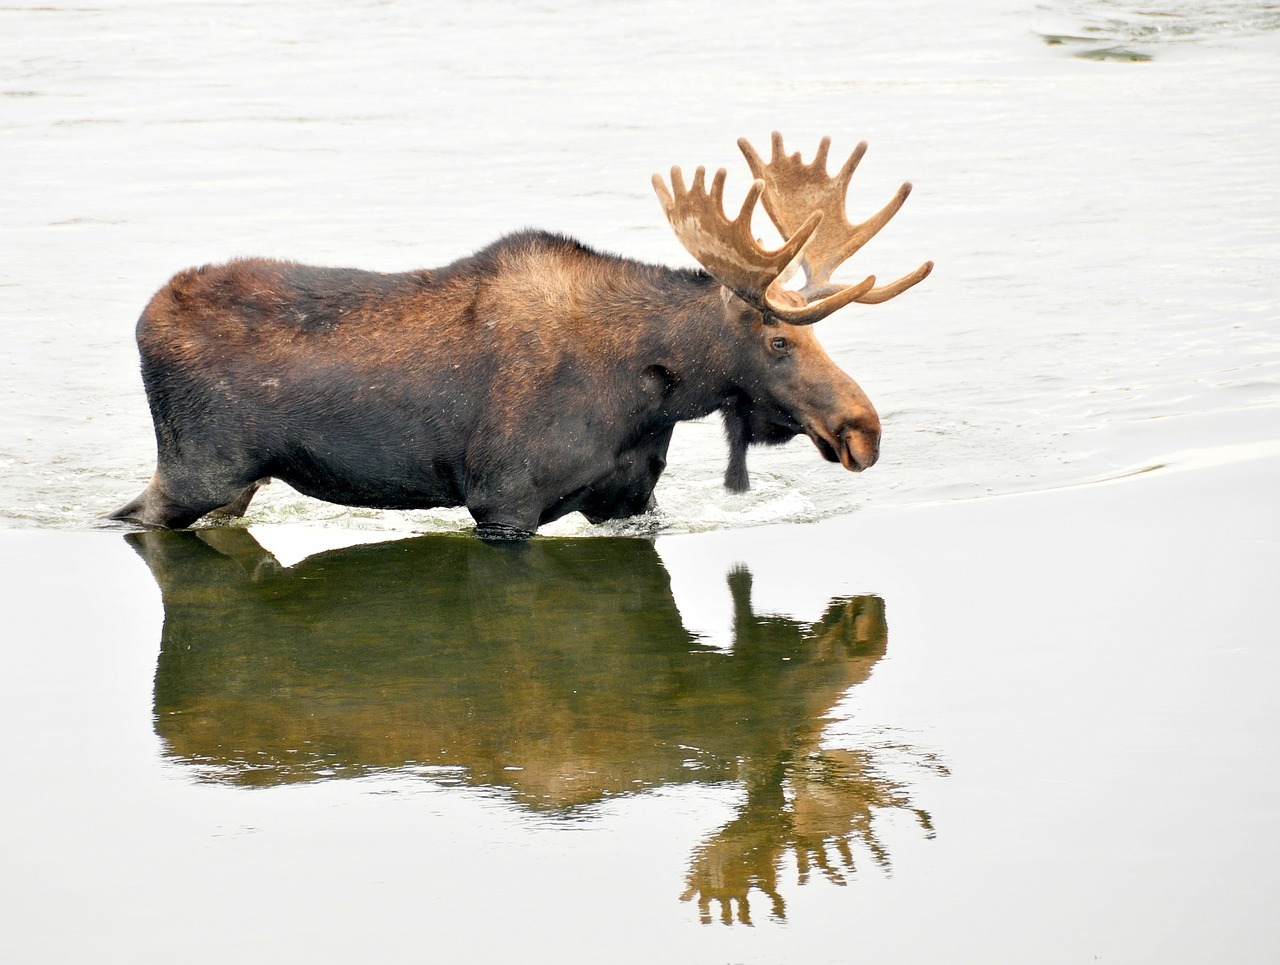 Supreme Court rules Alaskan river not under purview of National Park Service